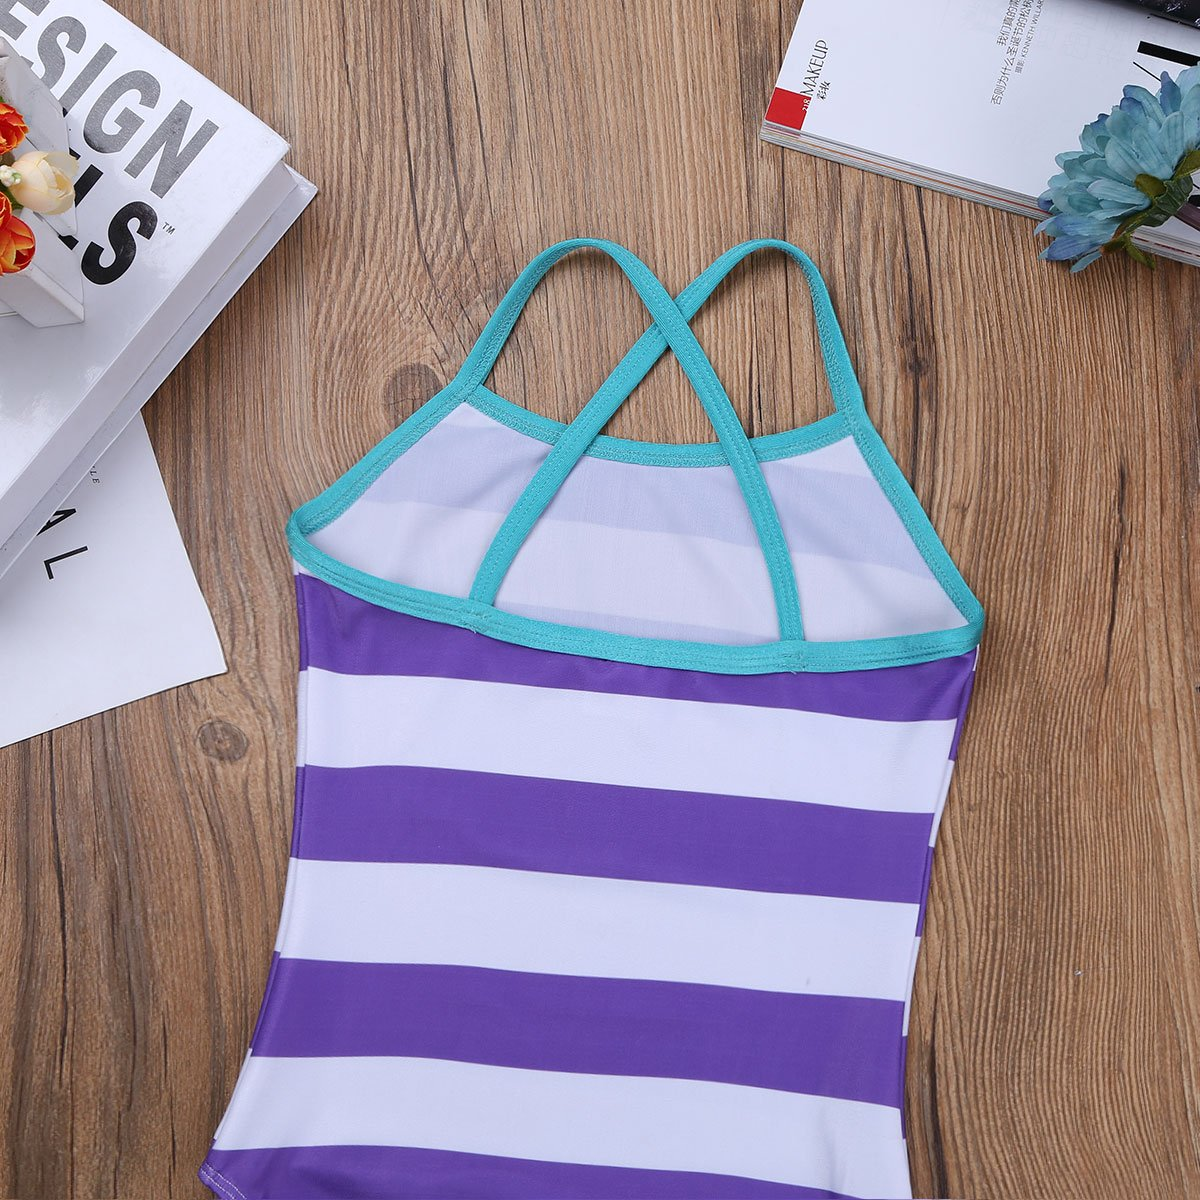 CHICTRY One Piece Swimsuit Cute Stripes Crossback Bathing Suit Swimwear for Baby Little//Big Girls